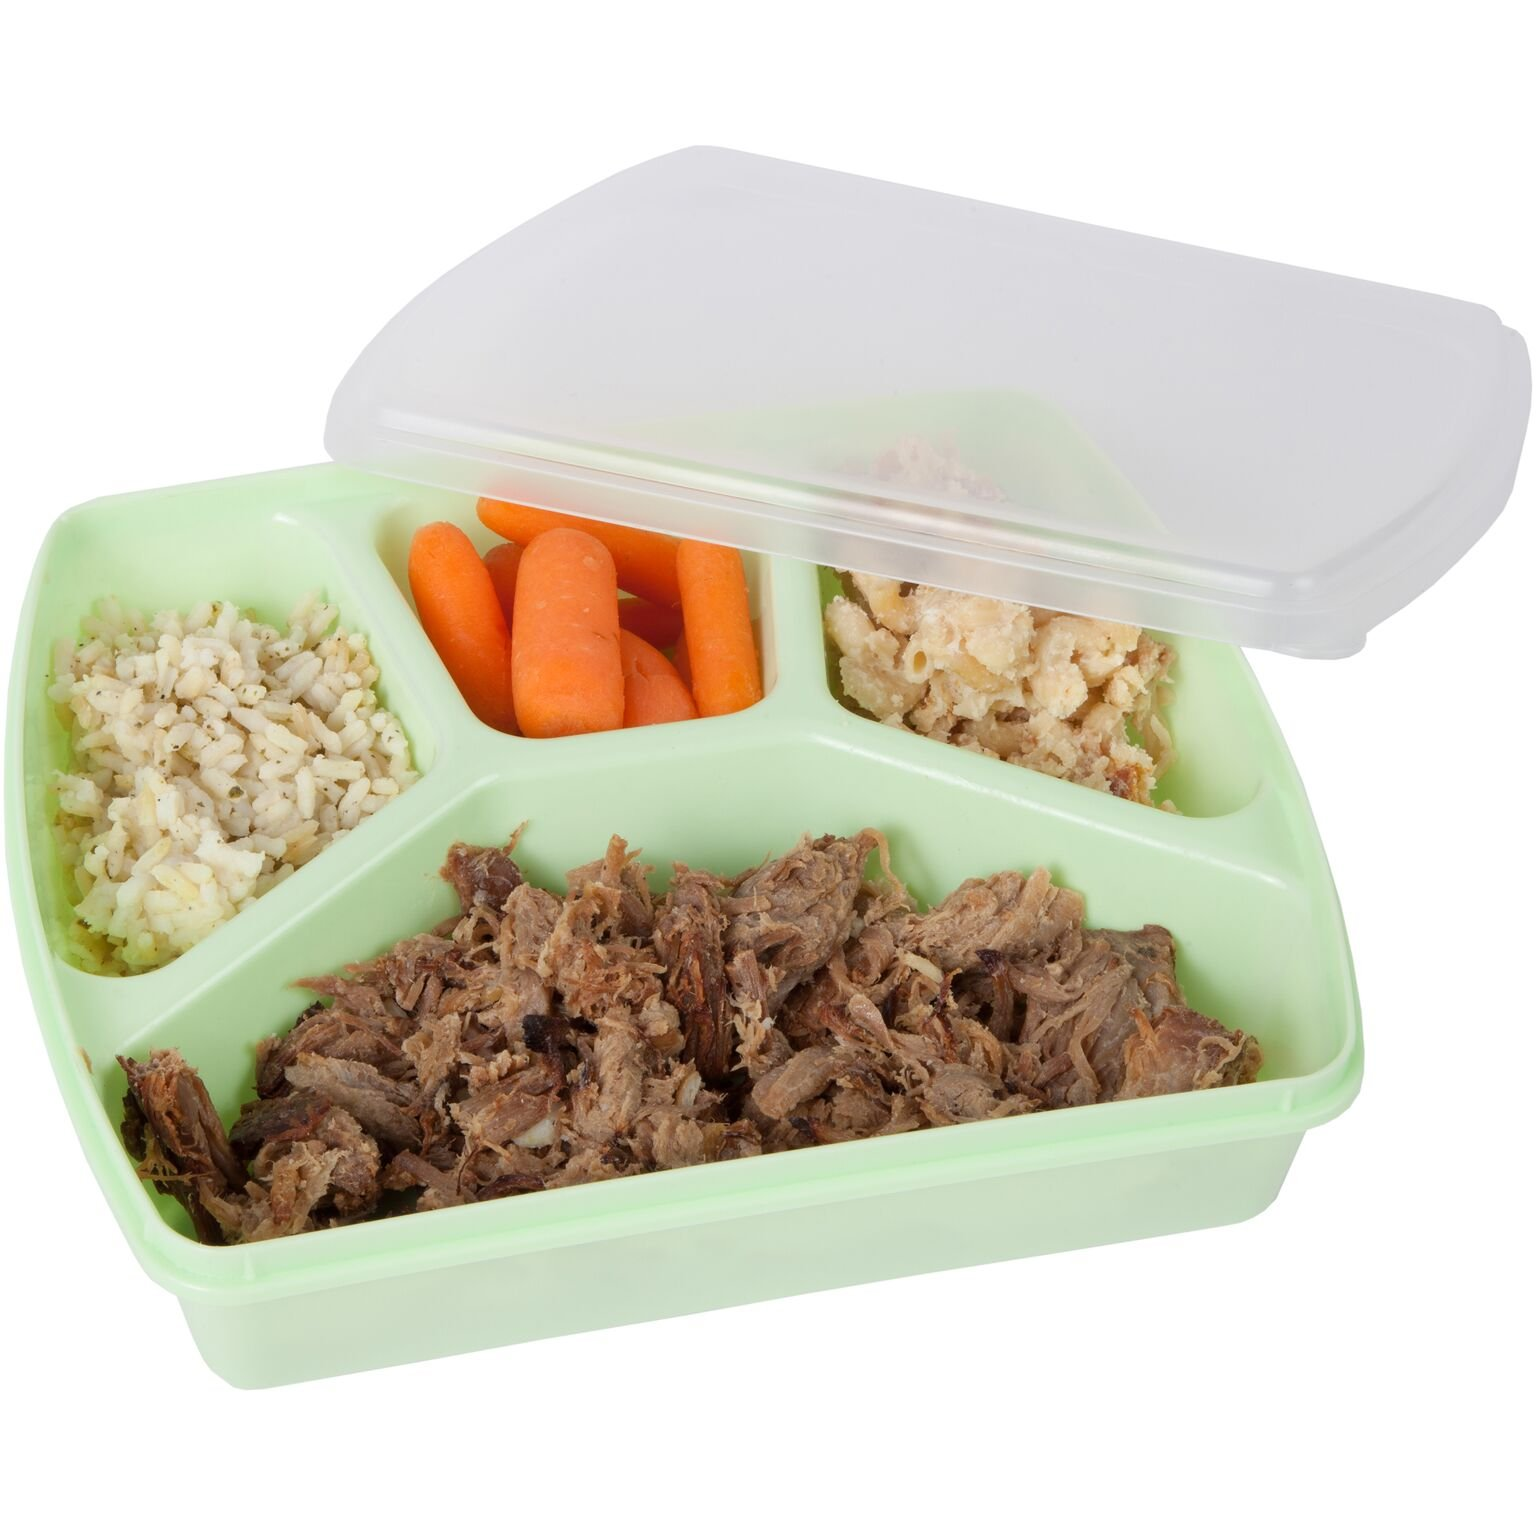 Trenton Gifts 4 Section Microwave Tray With Lid